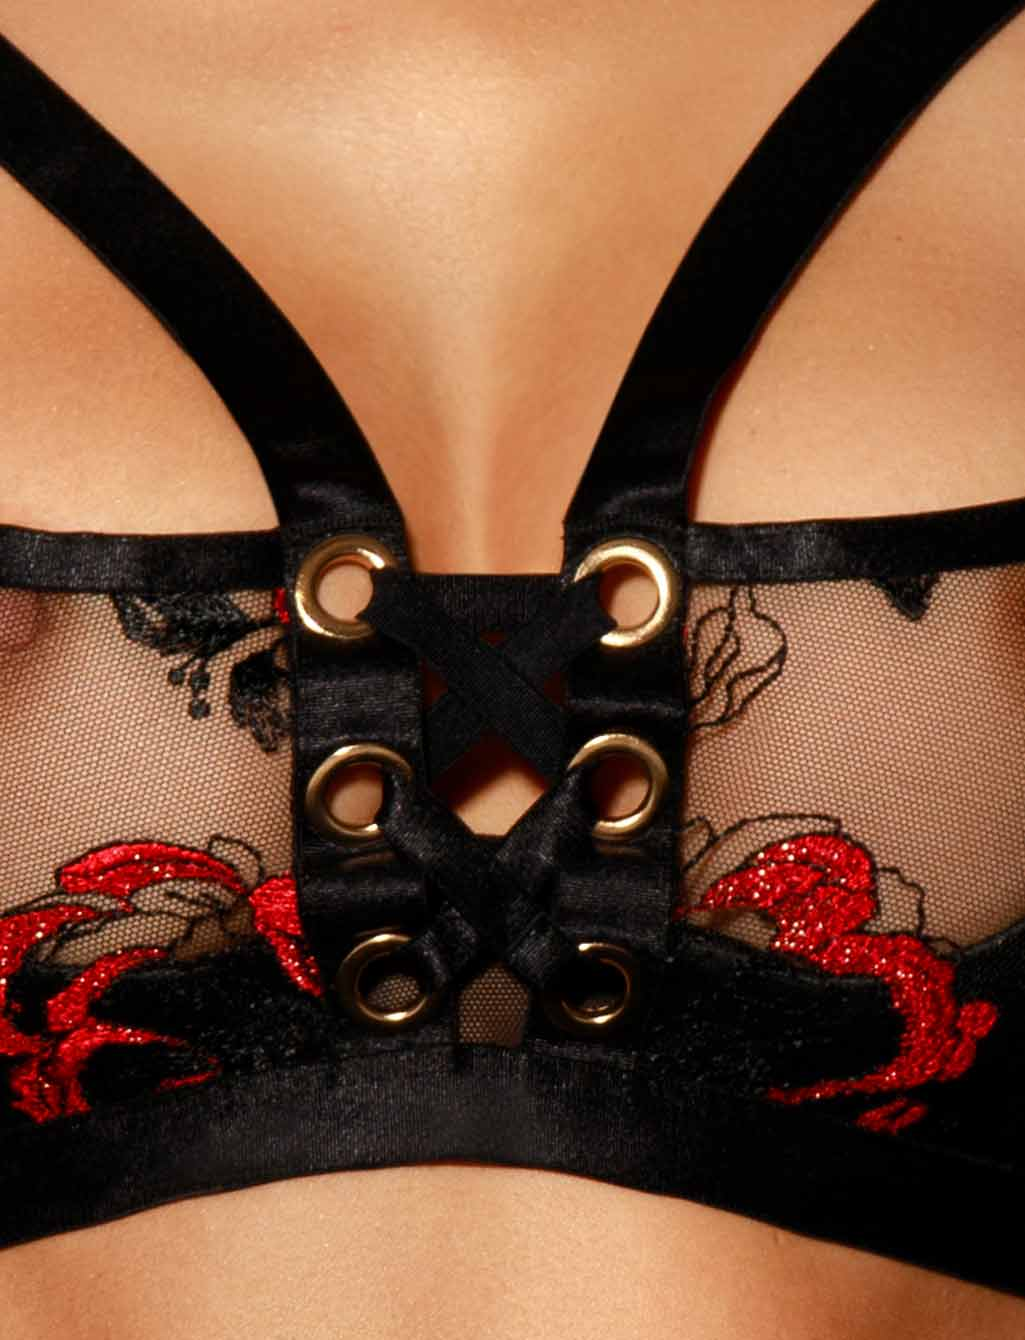 Freyah Lace Black & Red Underwire Bra